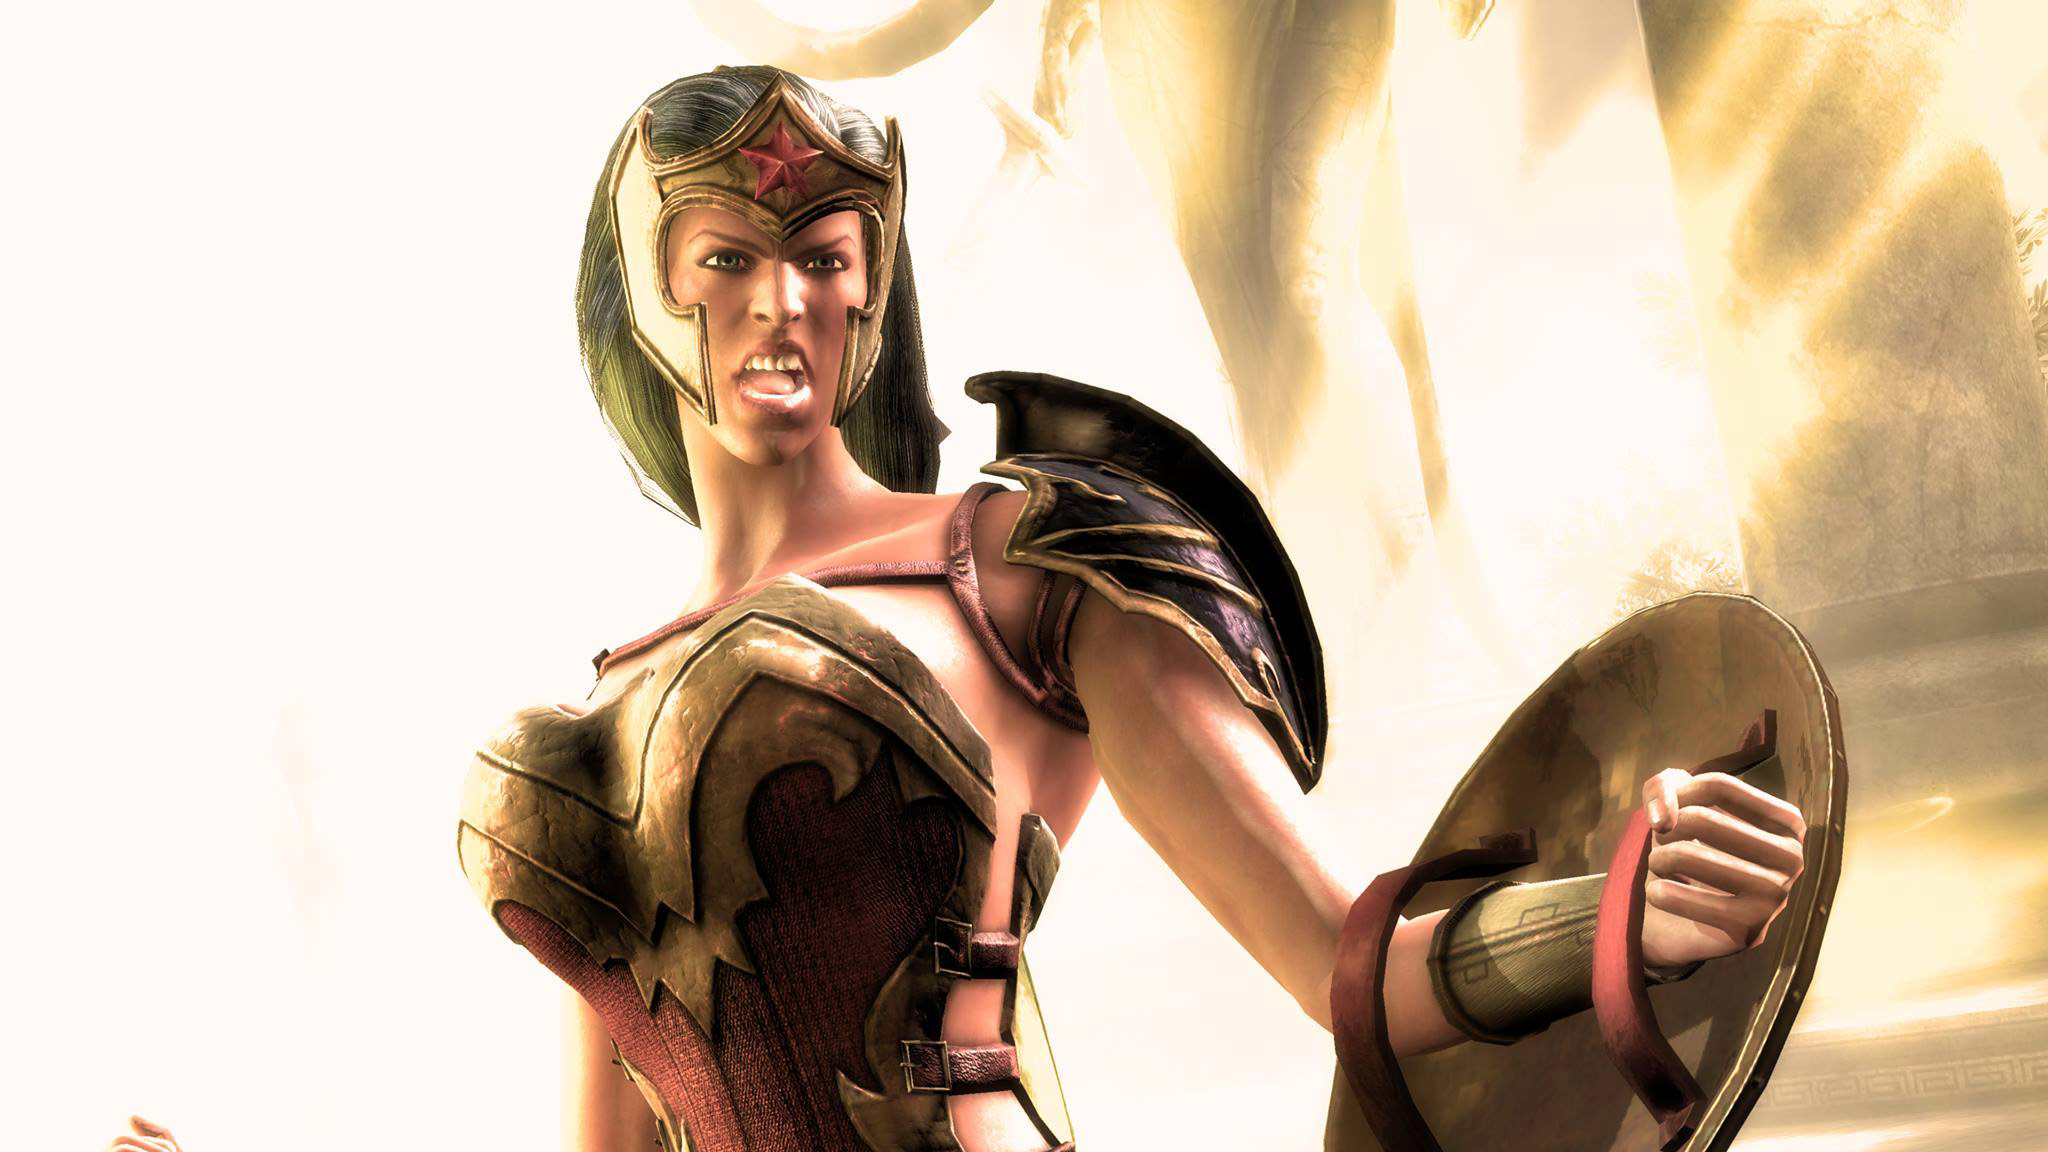 Wonder Woman's Ame-Comi skin in Injustice: Gods Among Us